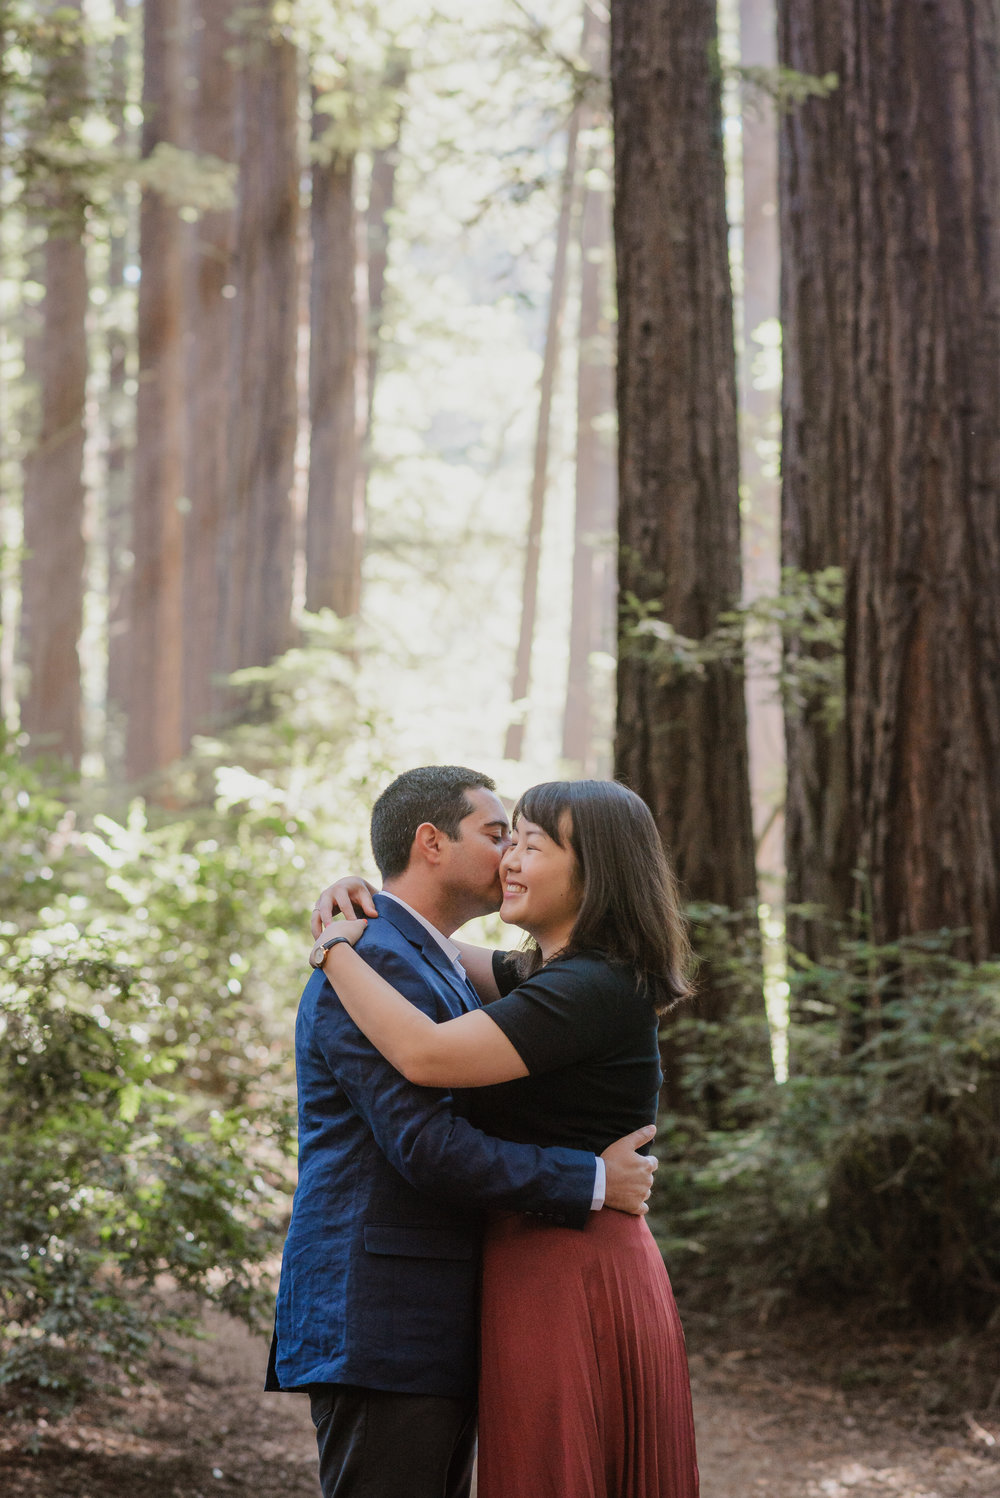 oakland-redwood-engagement-session-photographer-vivianchen-010.jpg